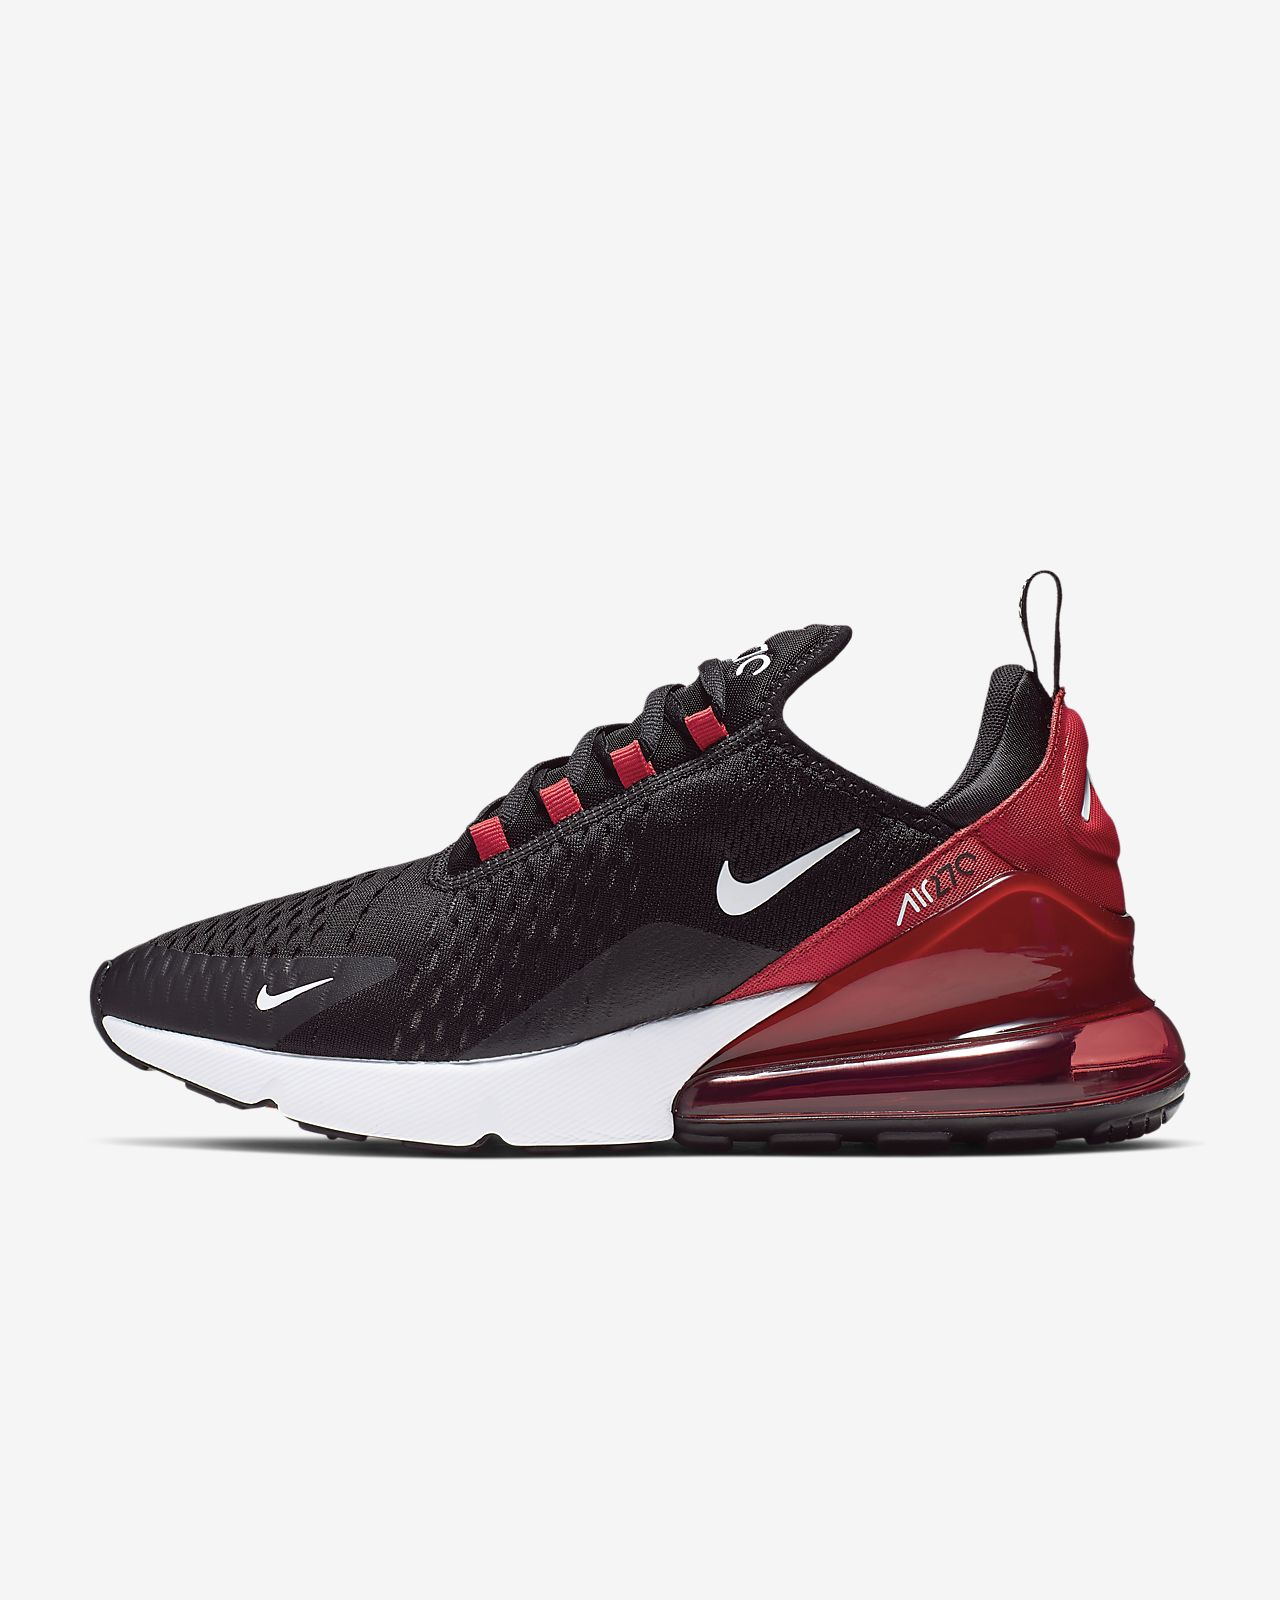 d21631c159ce2 Nike Air Max 270 Men s Shoe. Nike.com GB